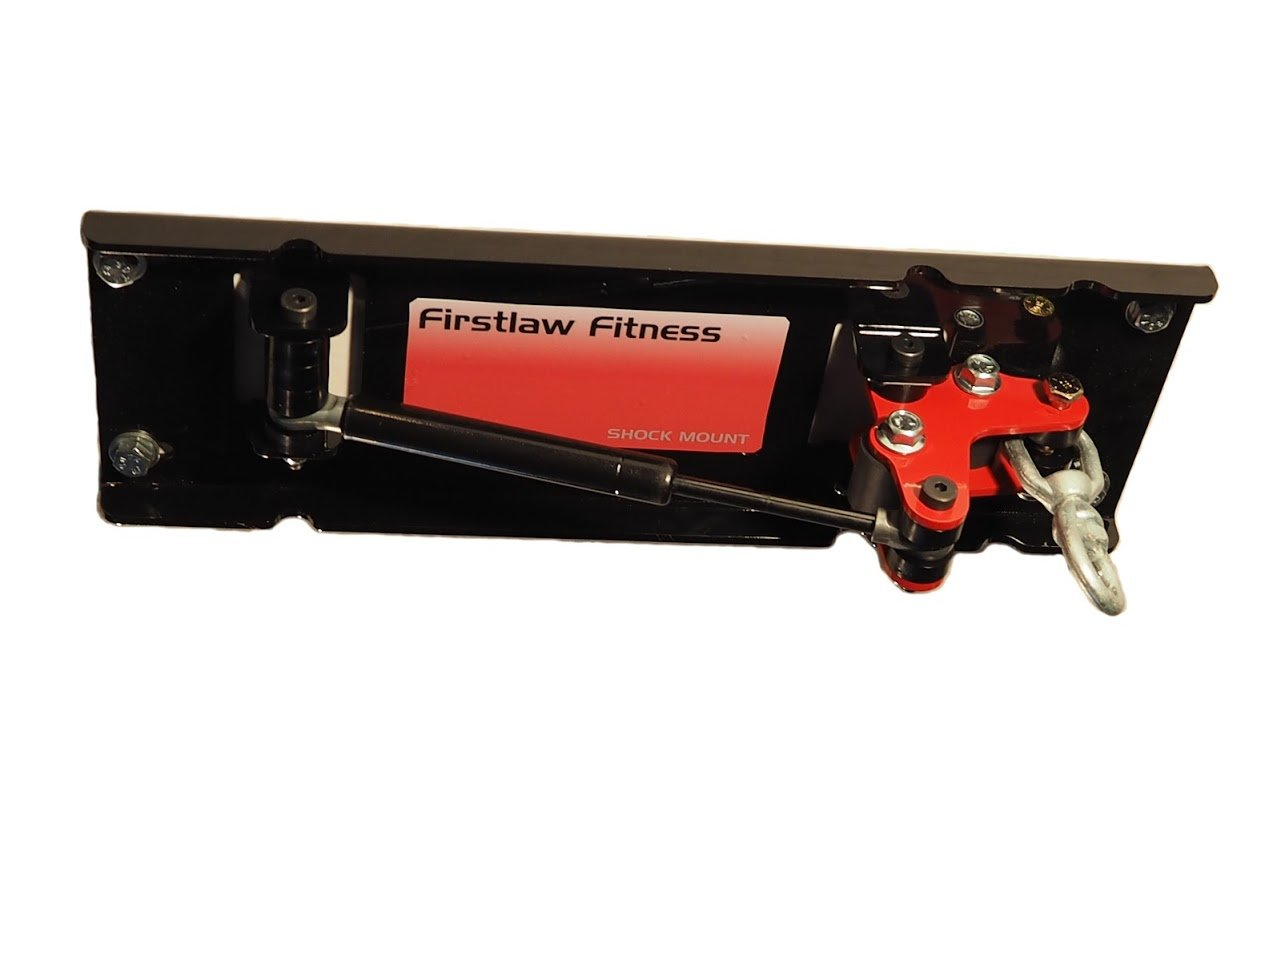 firstlaw FitnessショックマウントHeavy Punching Bag Hanger – 70ポンドバッグto 130ポンドバッグ – Made in the USA B015MAWXG6  120 LBS BAG